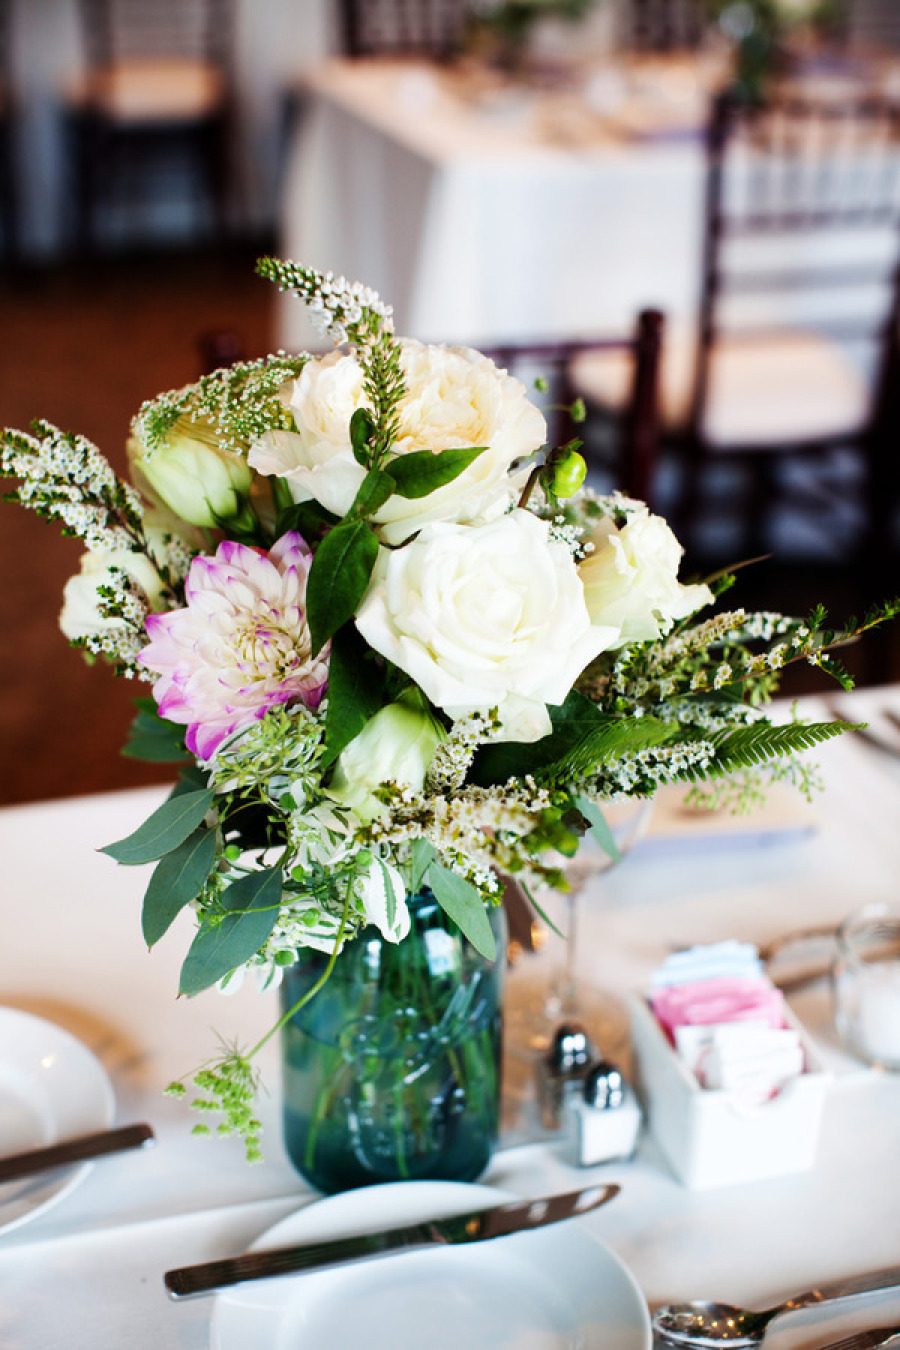 wedding-centerpiece-ideas-3-06102014nz